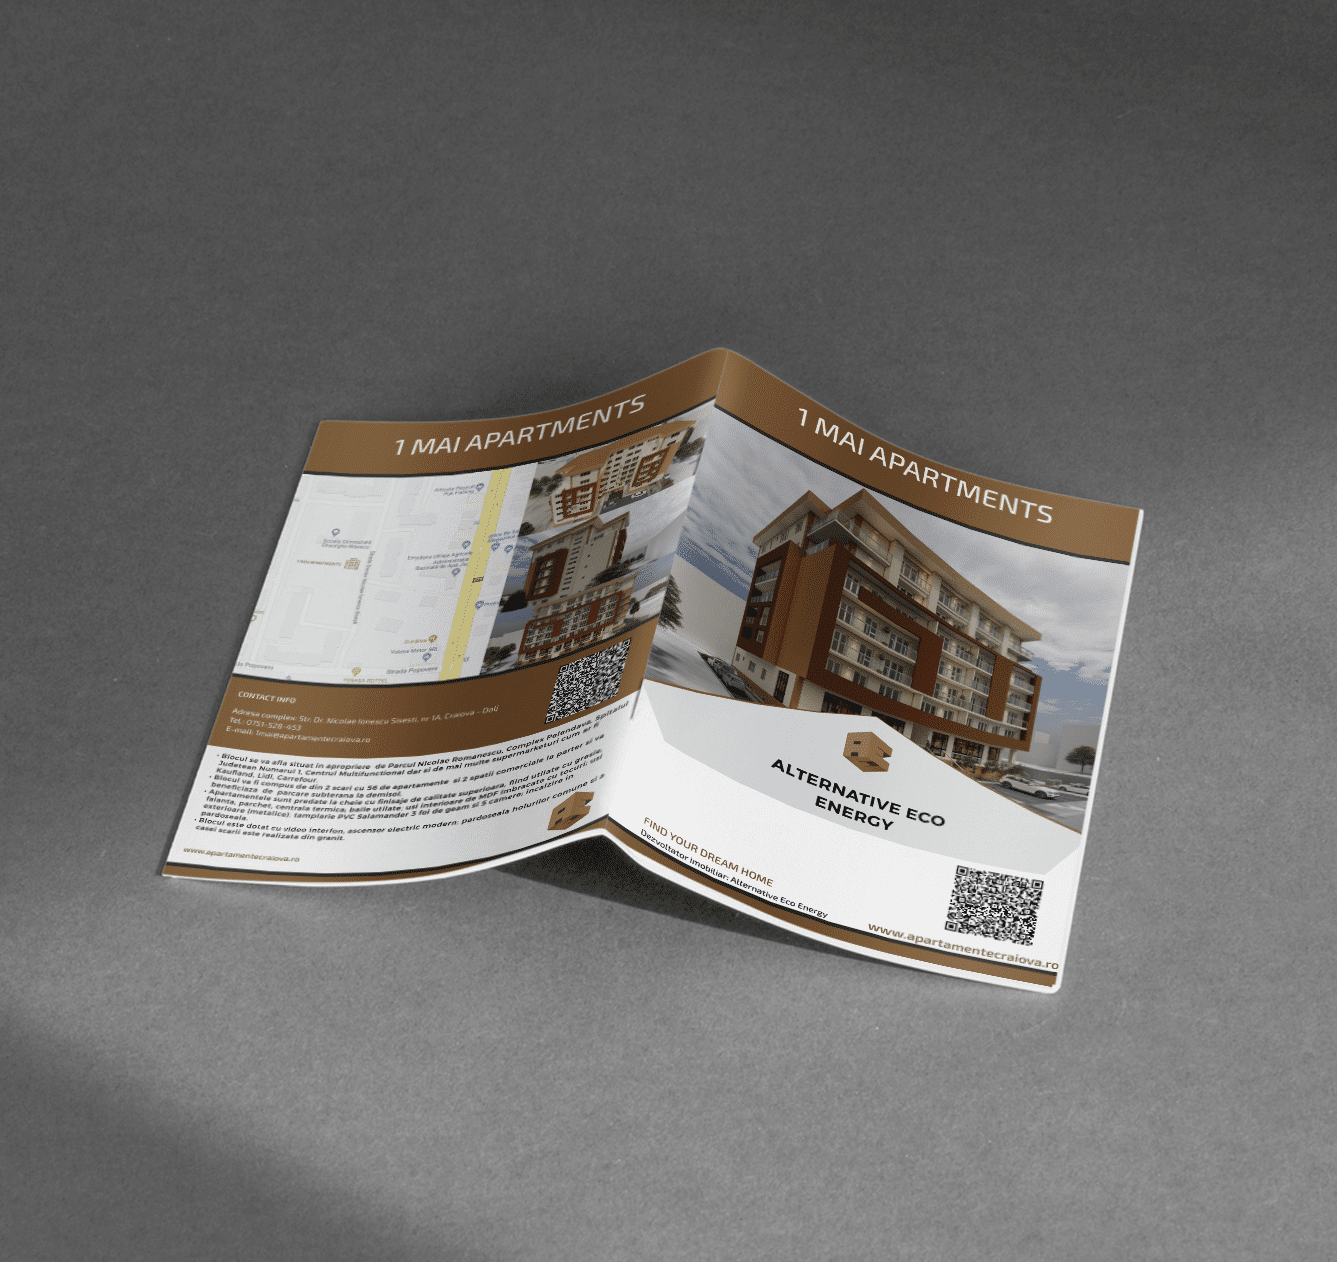 Hold Marketing Agentie de publicitate - Alternatice Eco Energy catalog design